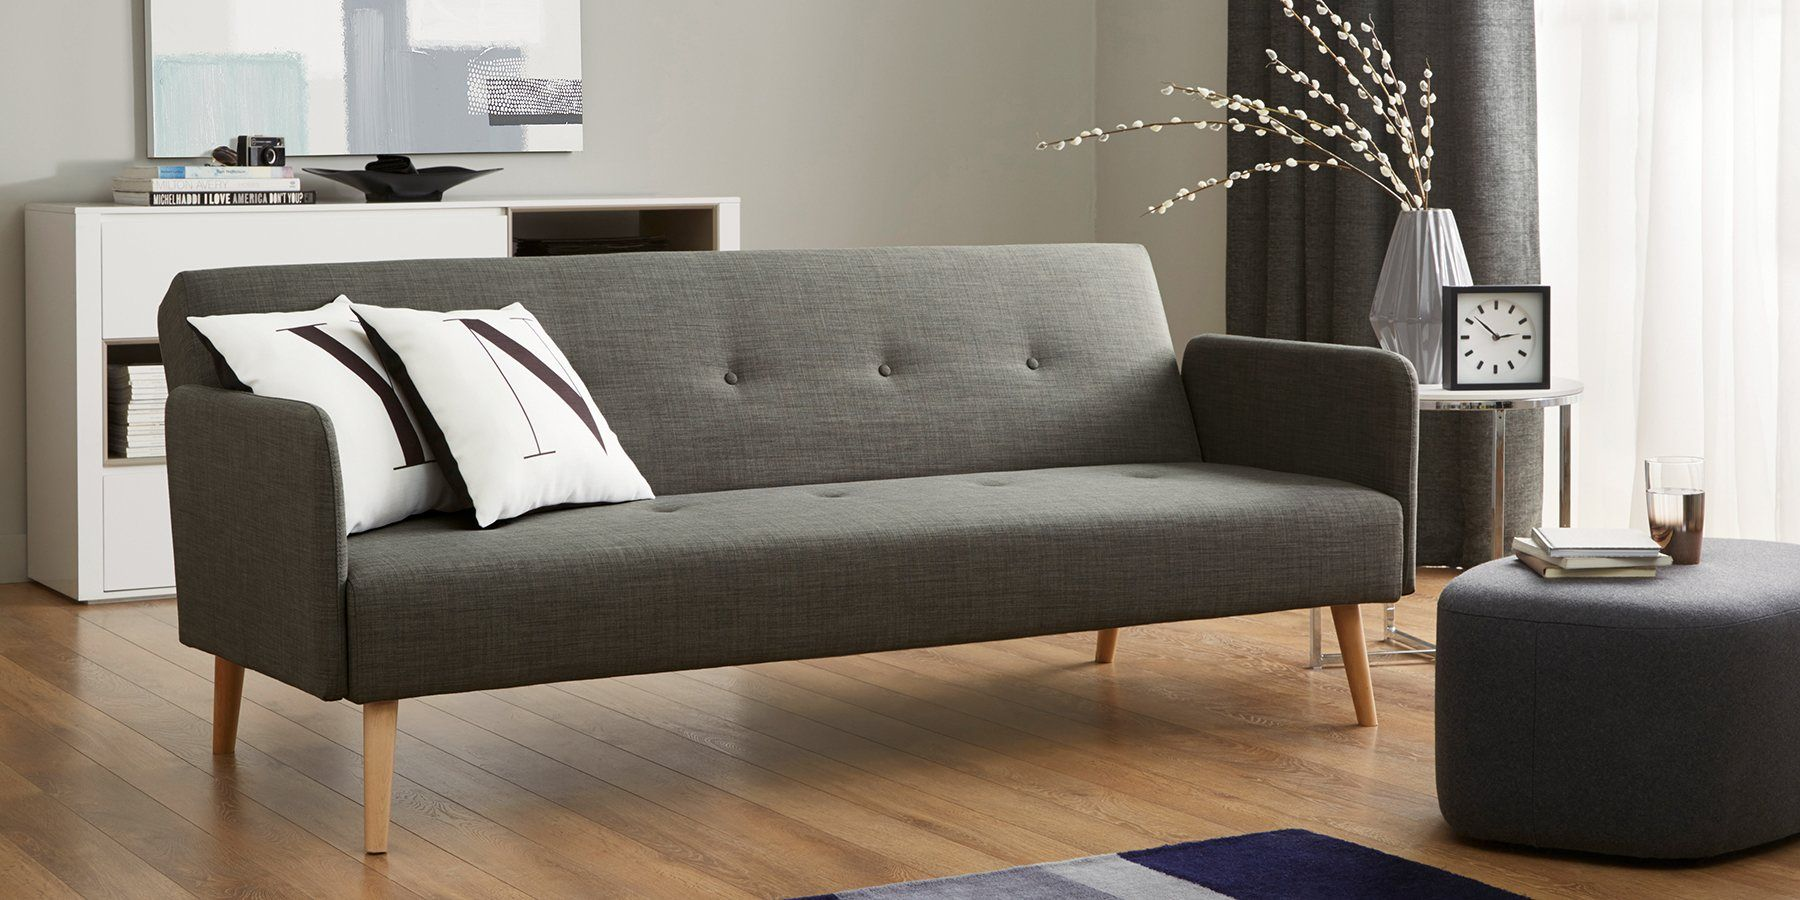 Buy Finnley Occasional Sofa Bed